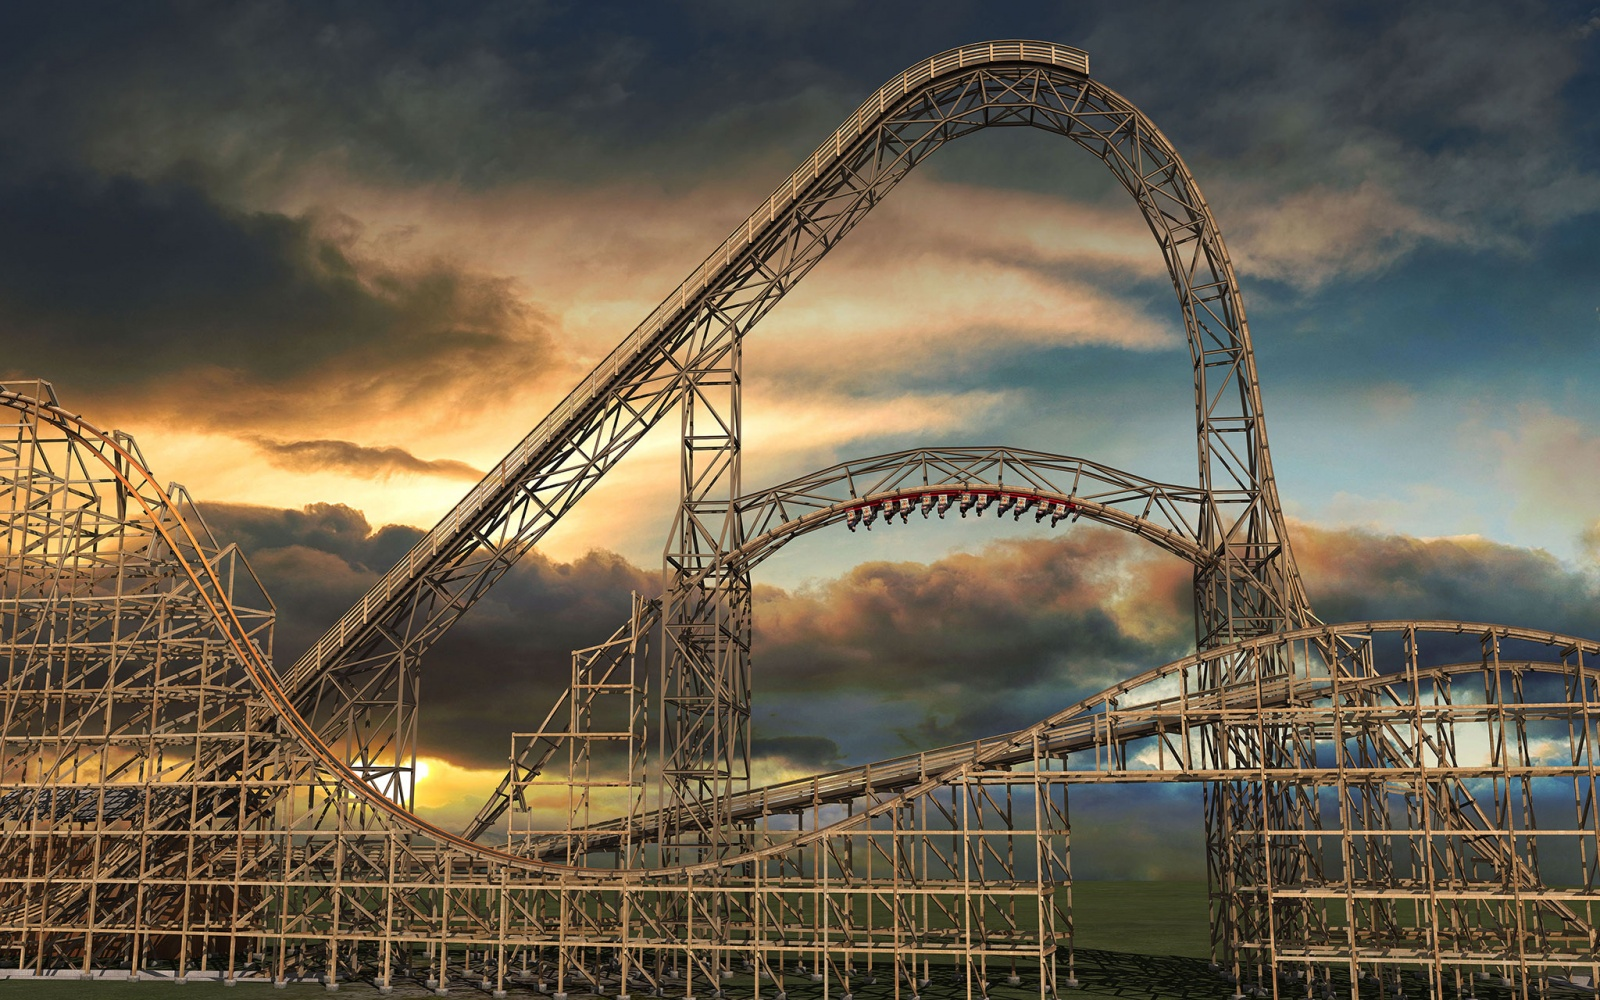 Ride the Newest Roller Coasters